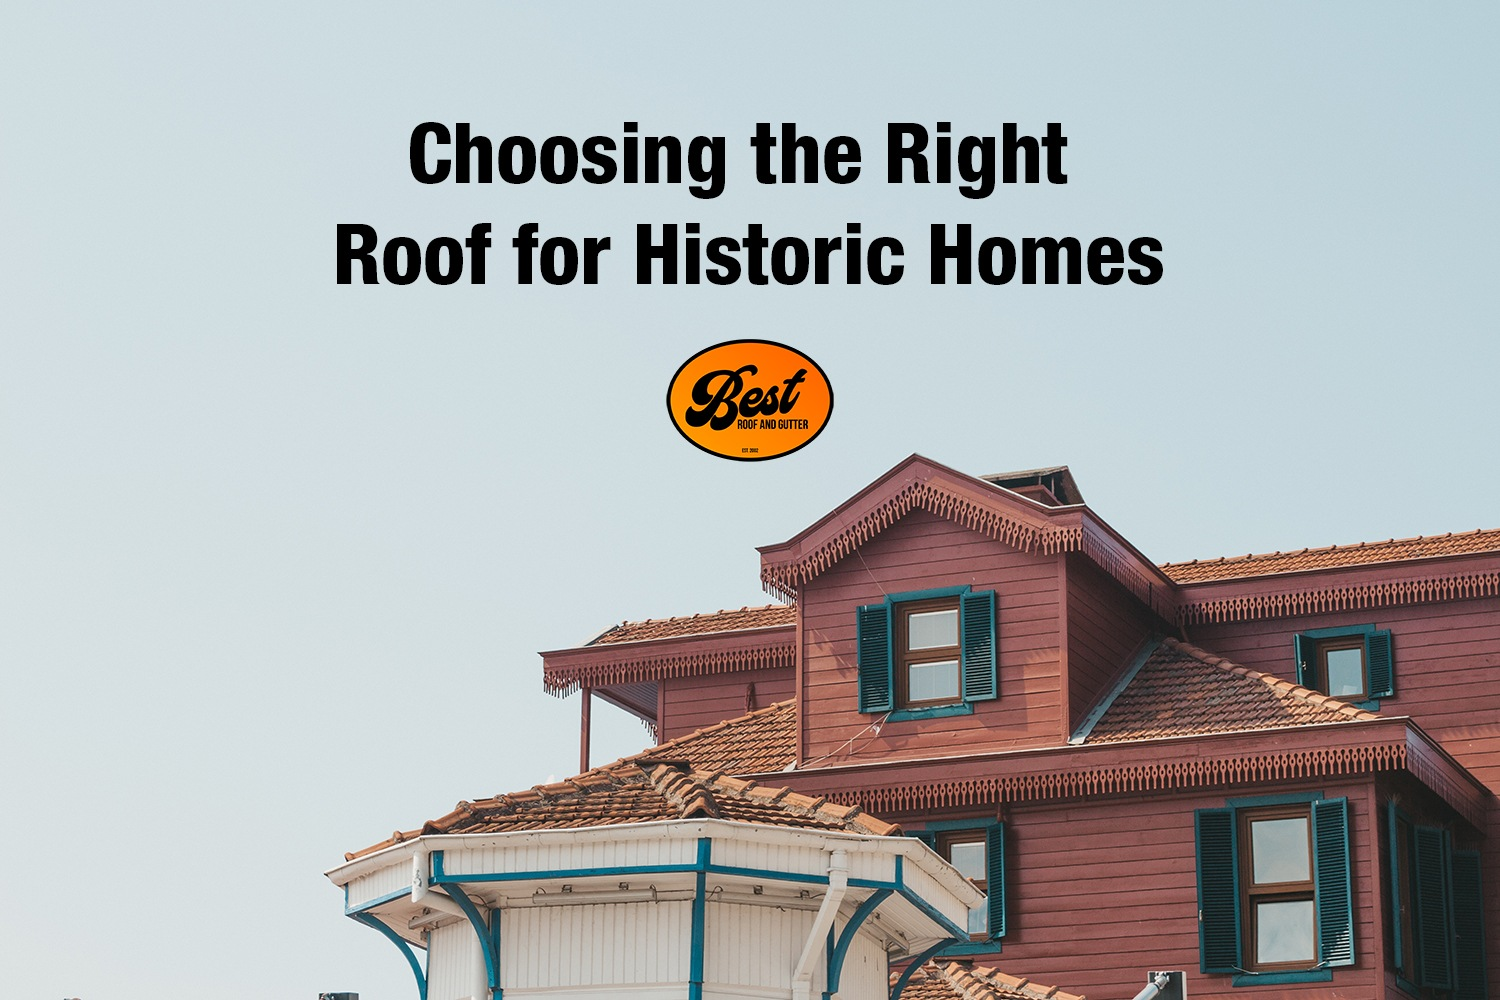 Choosing the Right Roof for Historic Homes